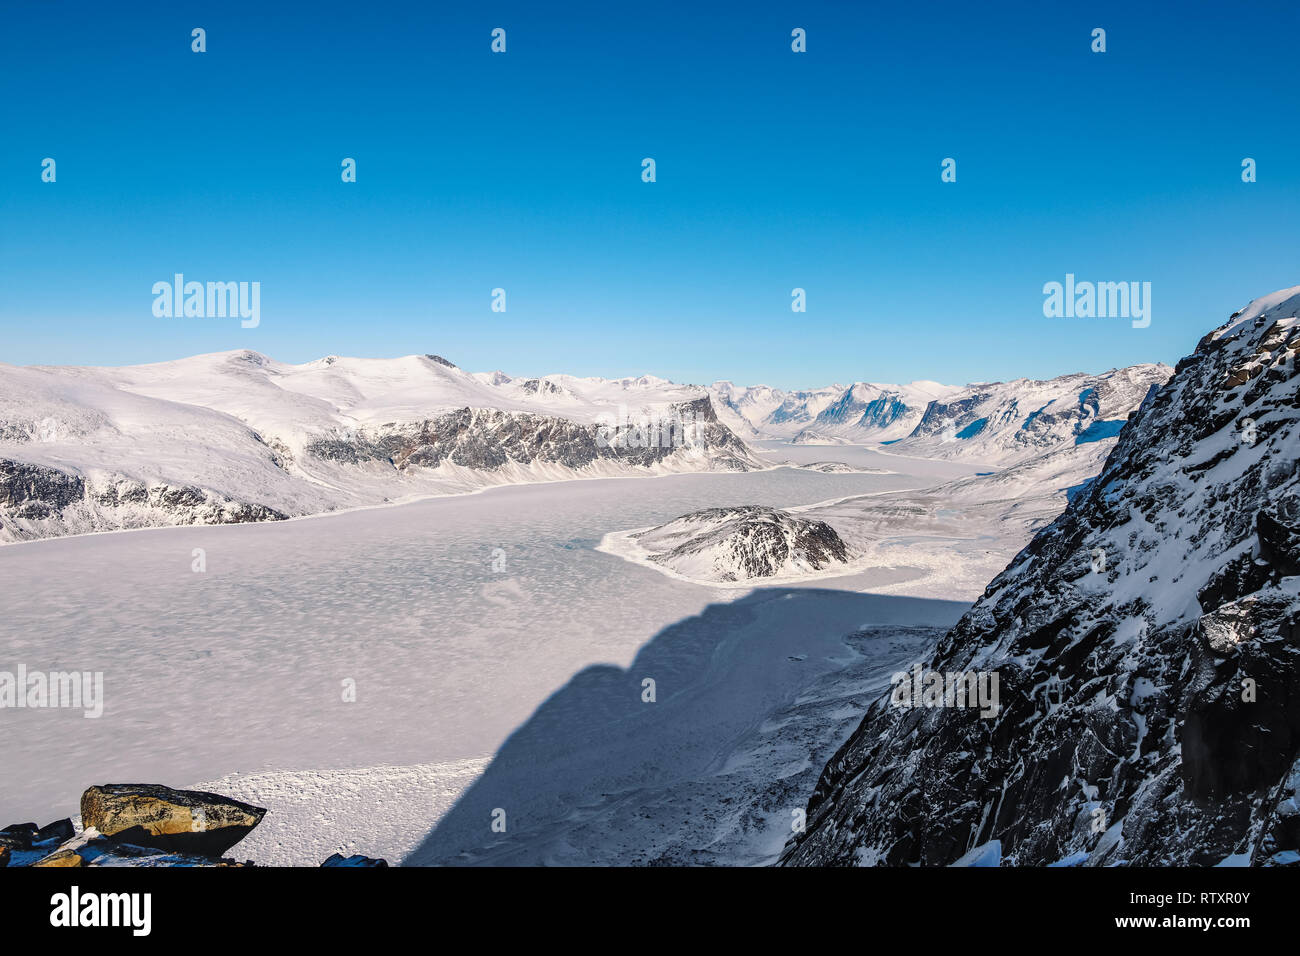 The view from the top of Mount Duval towards Auyuittuq NP - Stock Image